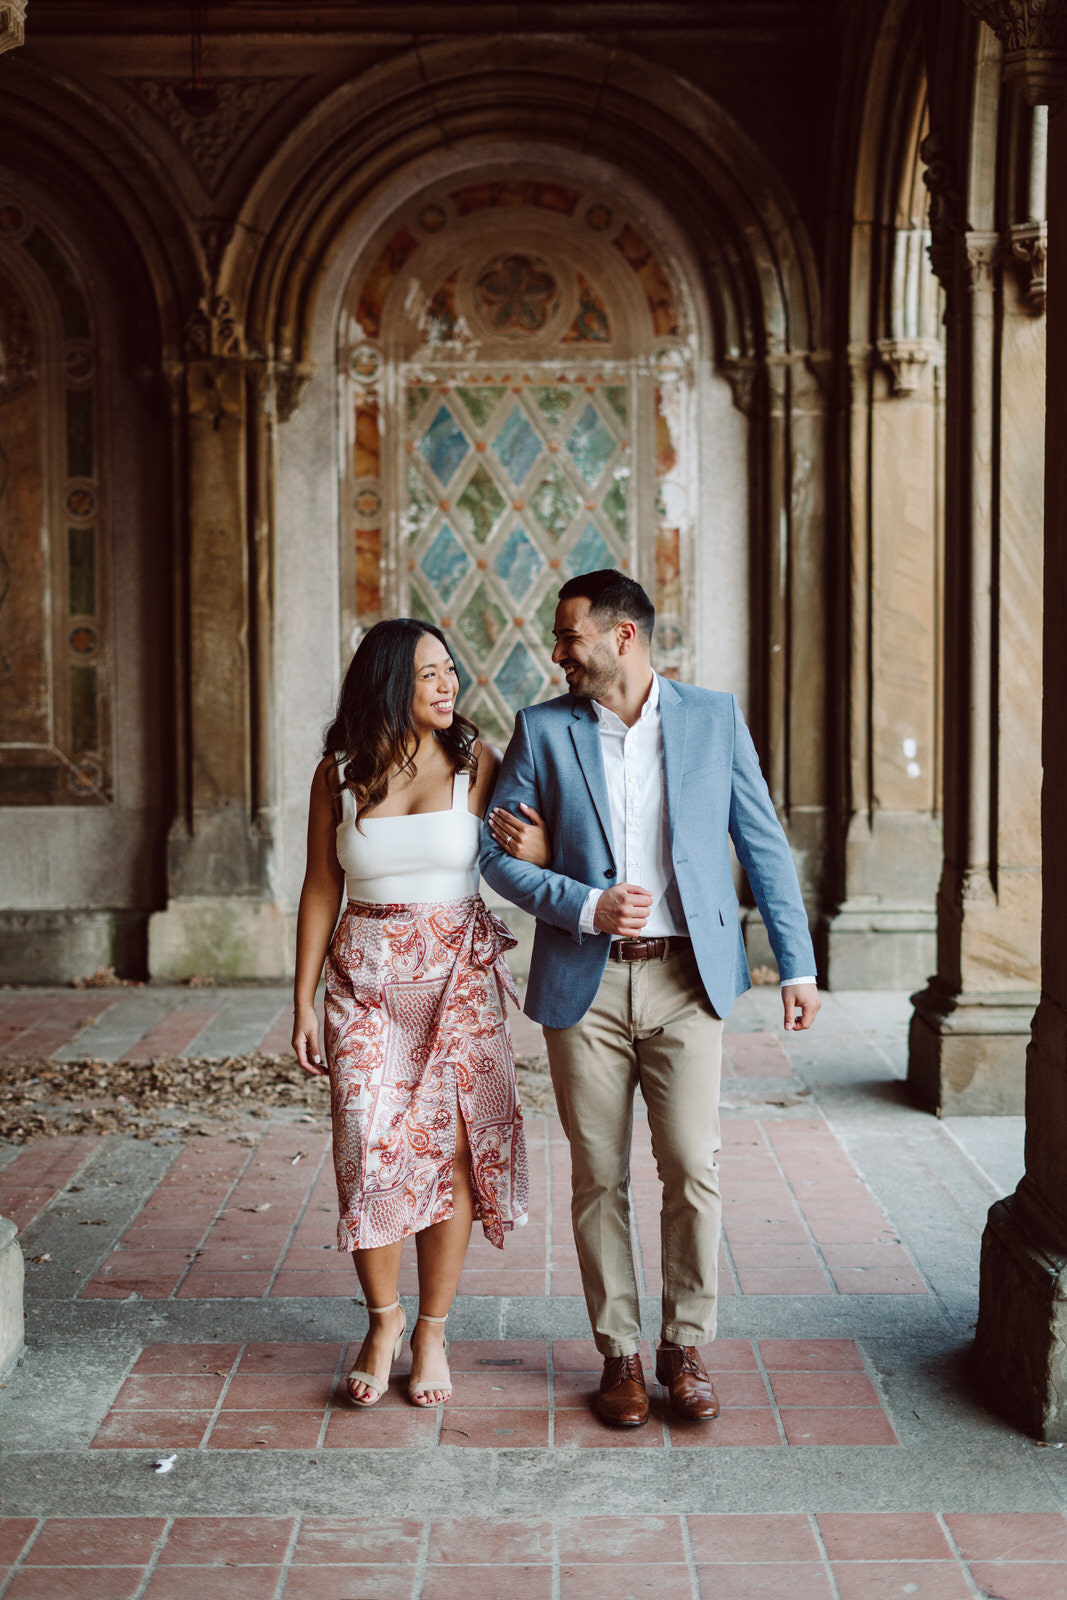 Bethesda Terrace Engagement Photo spots, Bethesda Terrace engagement spots, Best Central Park engagement Shoot spots, Best spots for engagement photos in central park